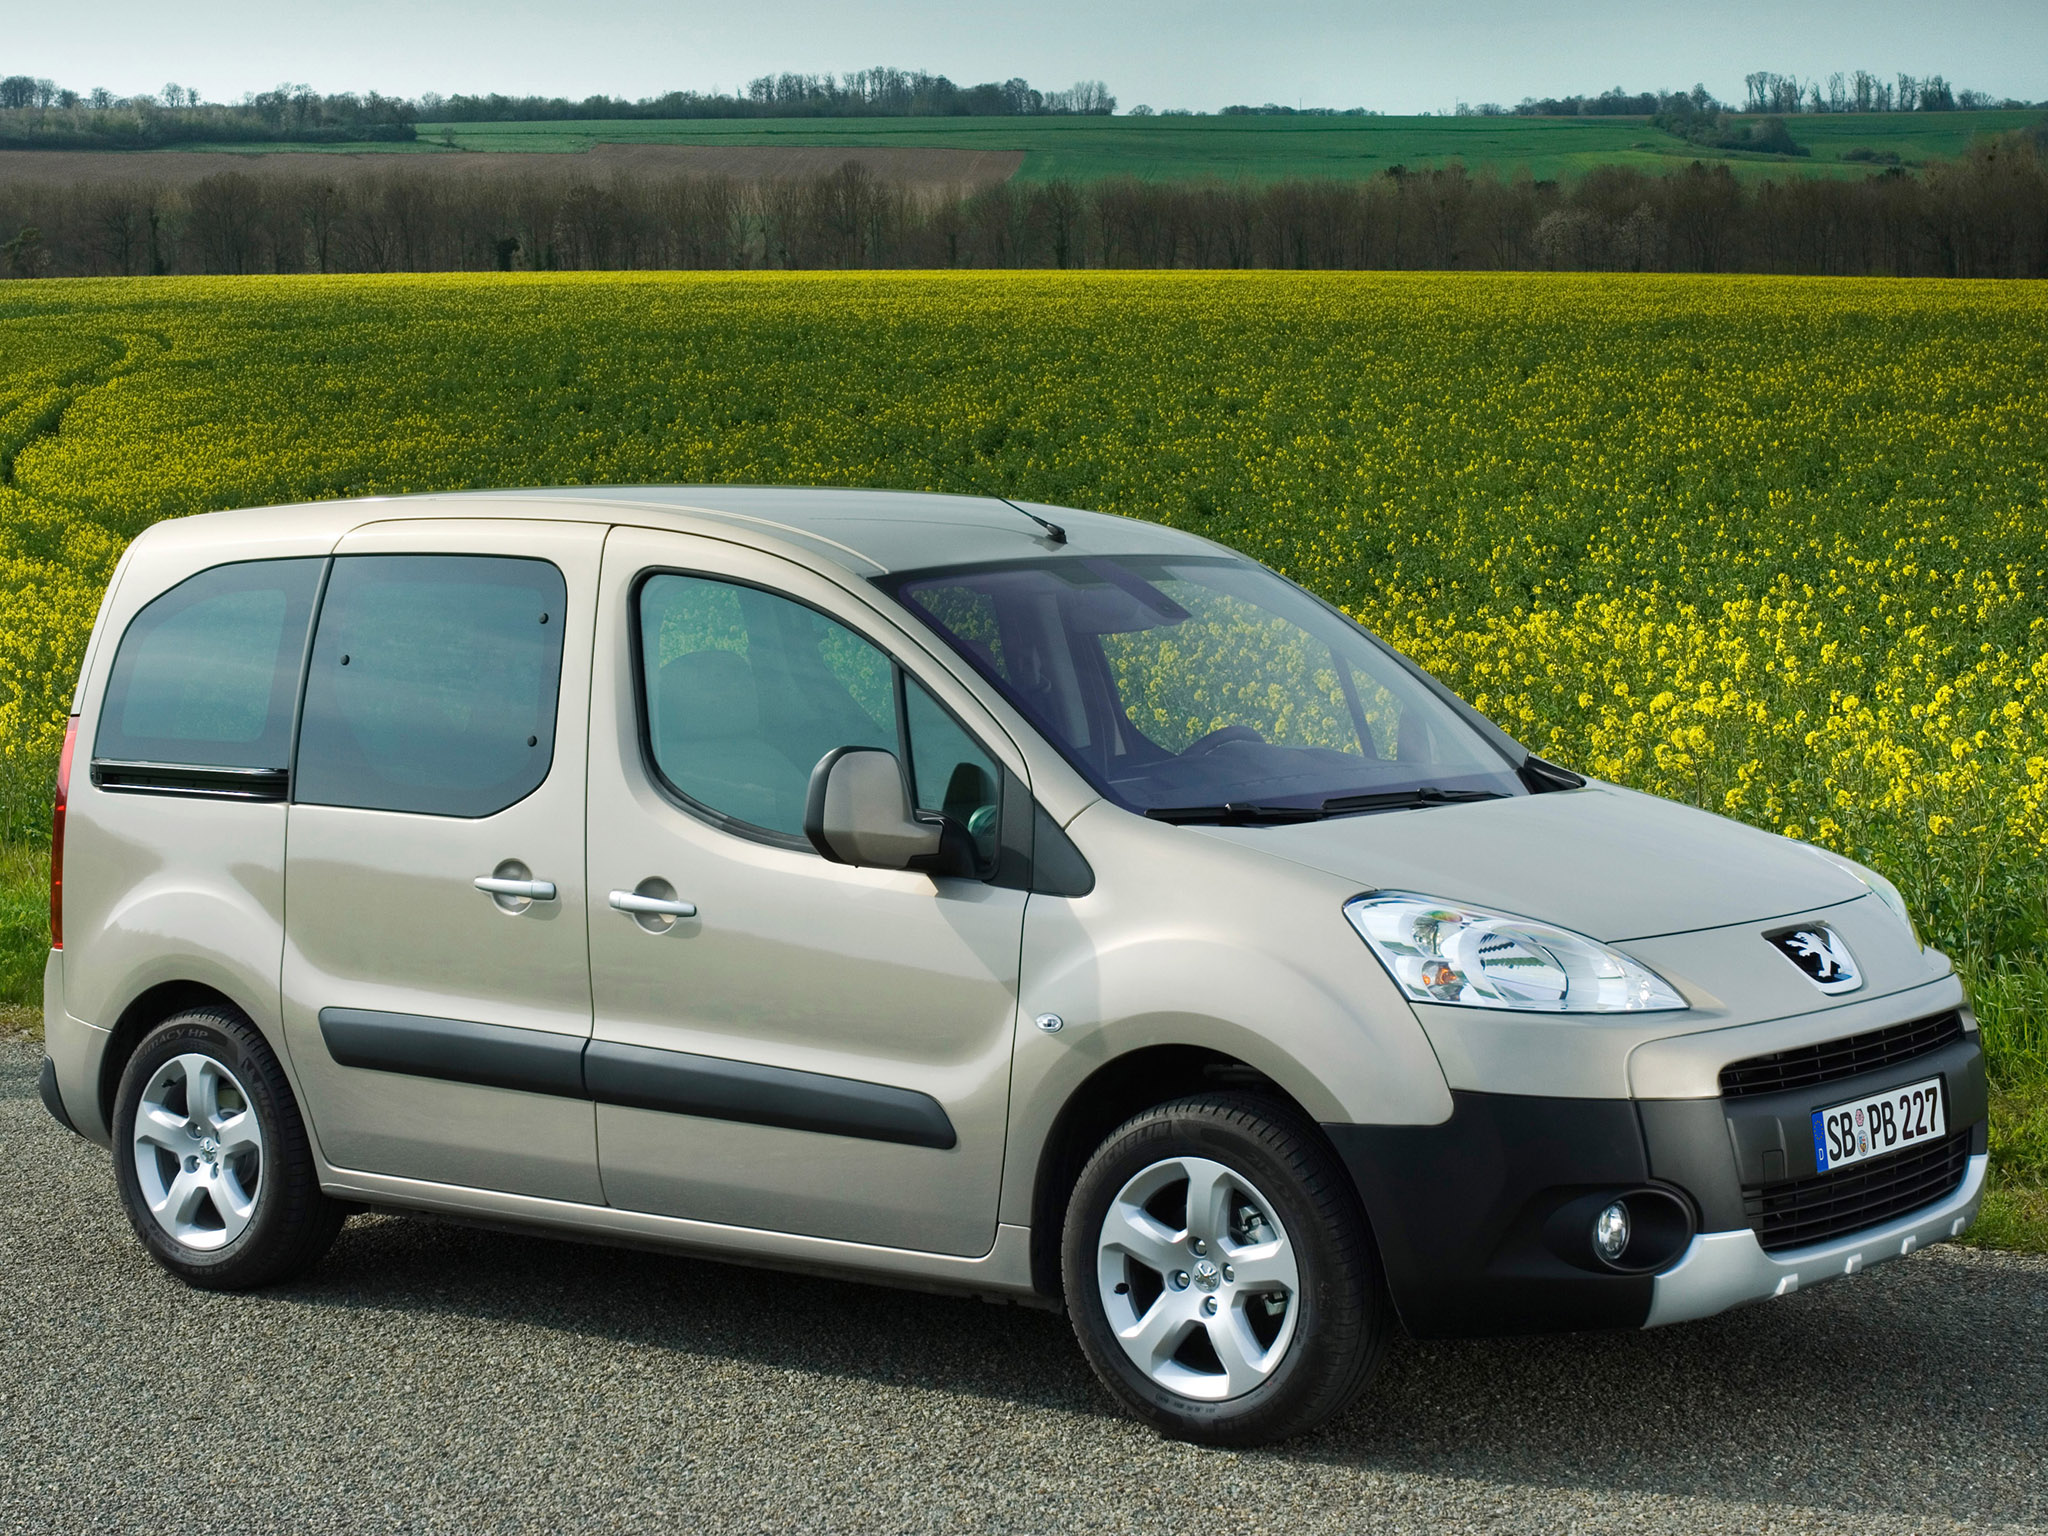 peugeot partner tepee 2009 pictures #2